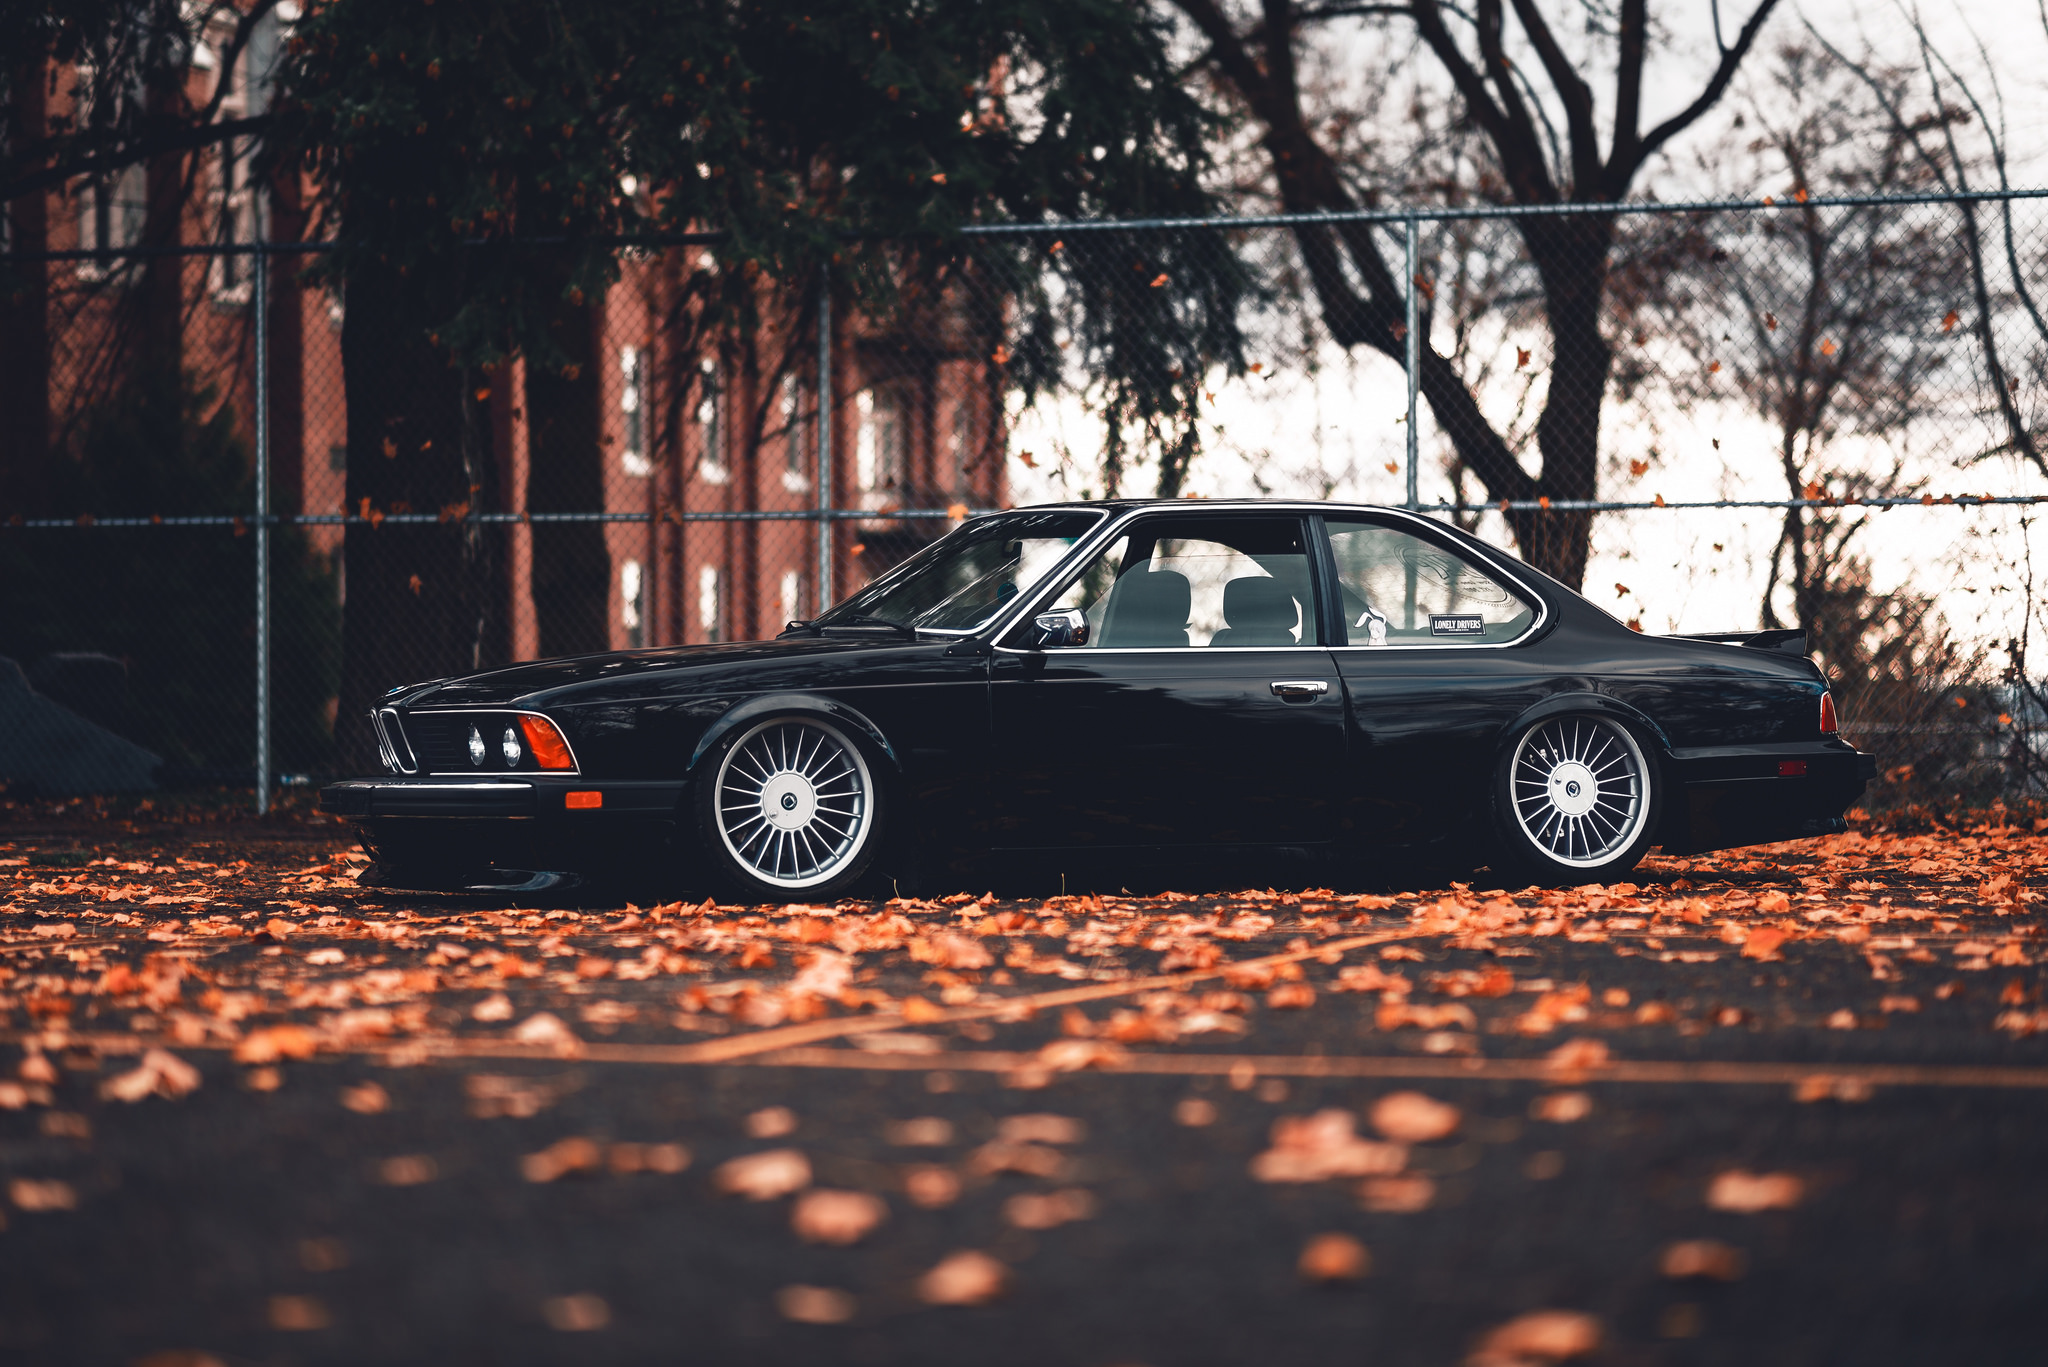 Child Wallpaper Hd Bmw E24 X Post From R Stance Wallpapers